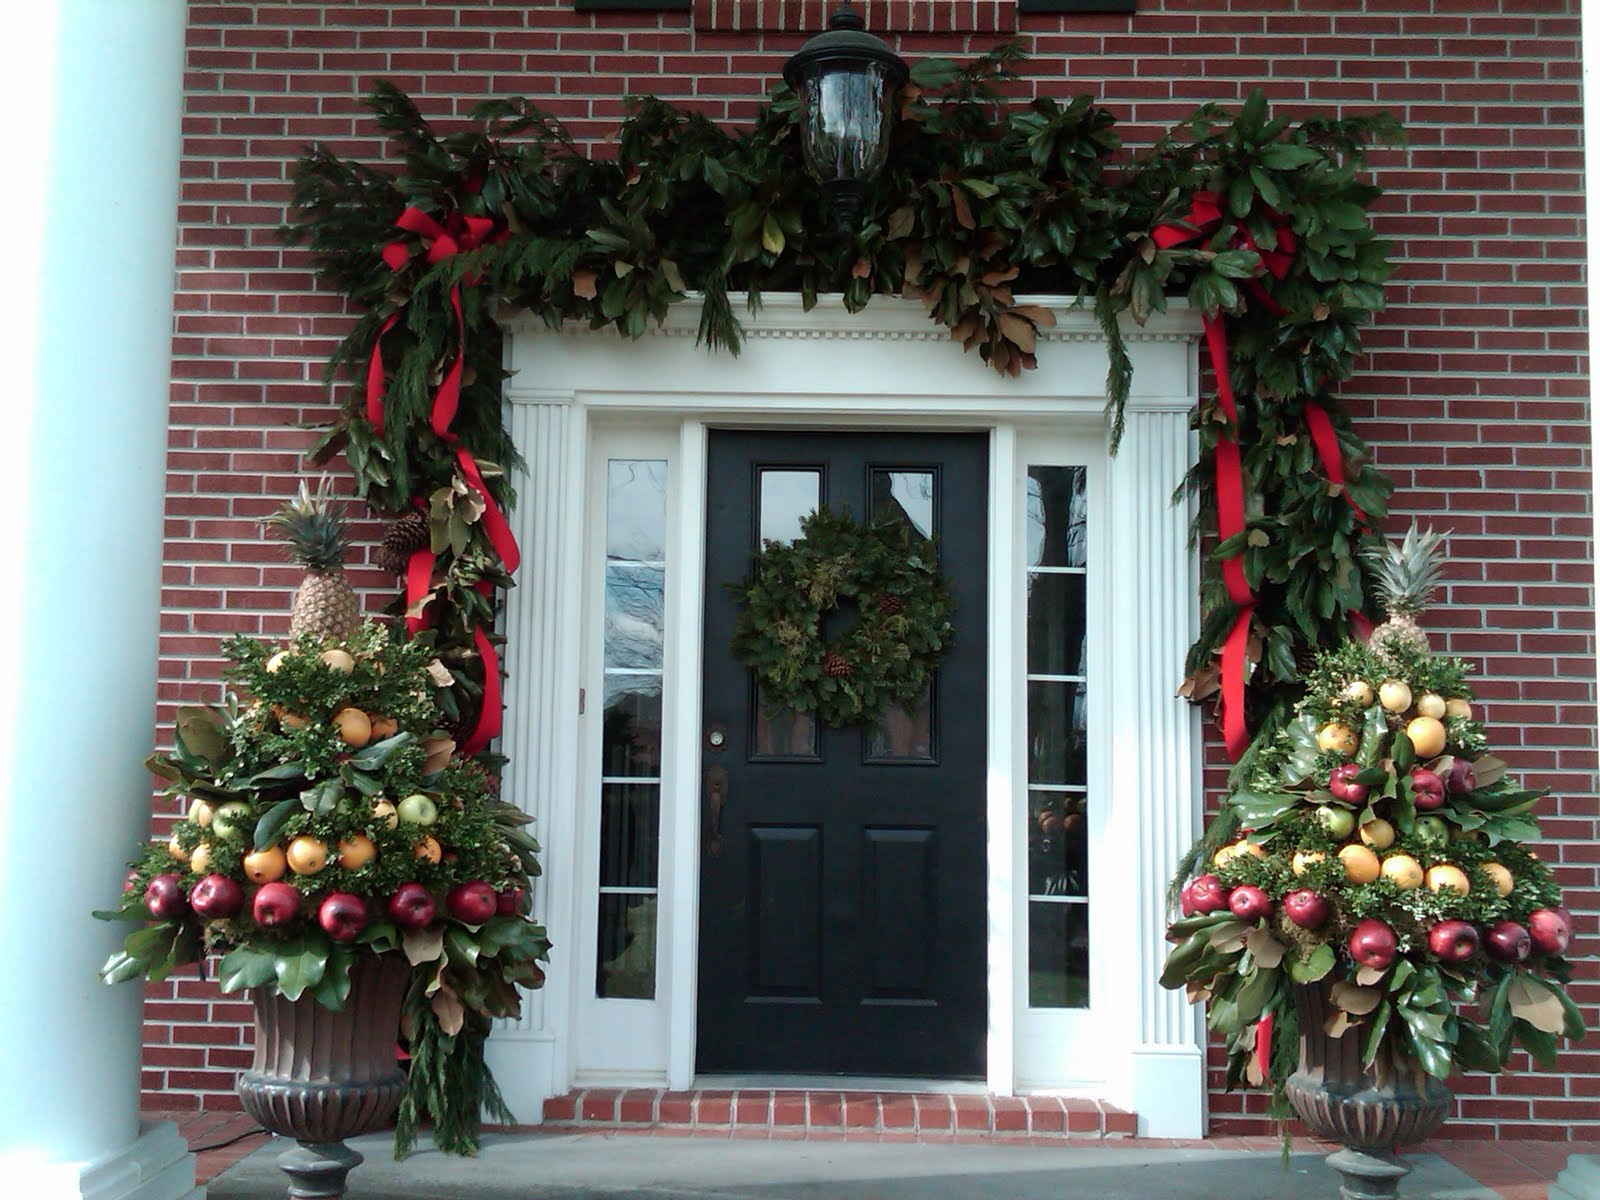 exterior-architecture-rich-and-beauty-christmas-decorating-ideas-for-rustic-front-porch-ideas-with-black-half-glass-entry-doors-added-wreath-as-well-as-brick-wall-facade-designs-.jpg